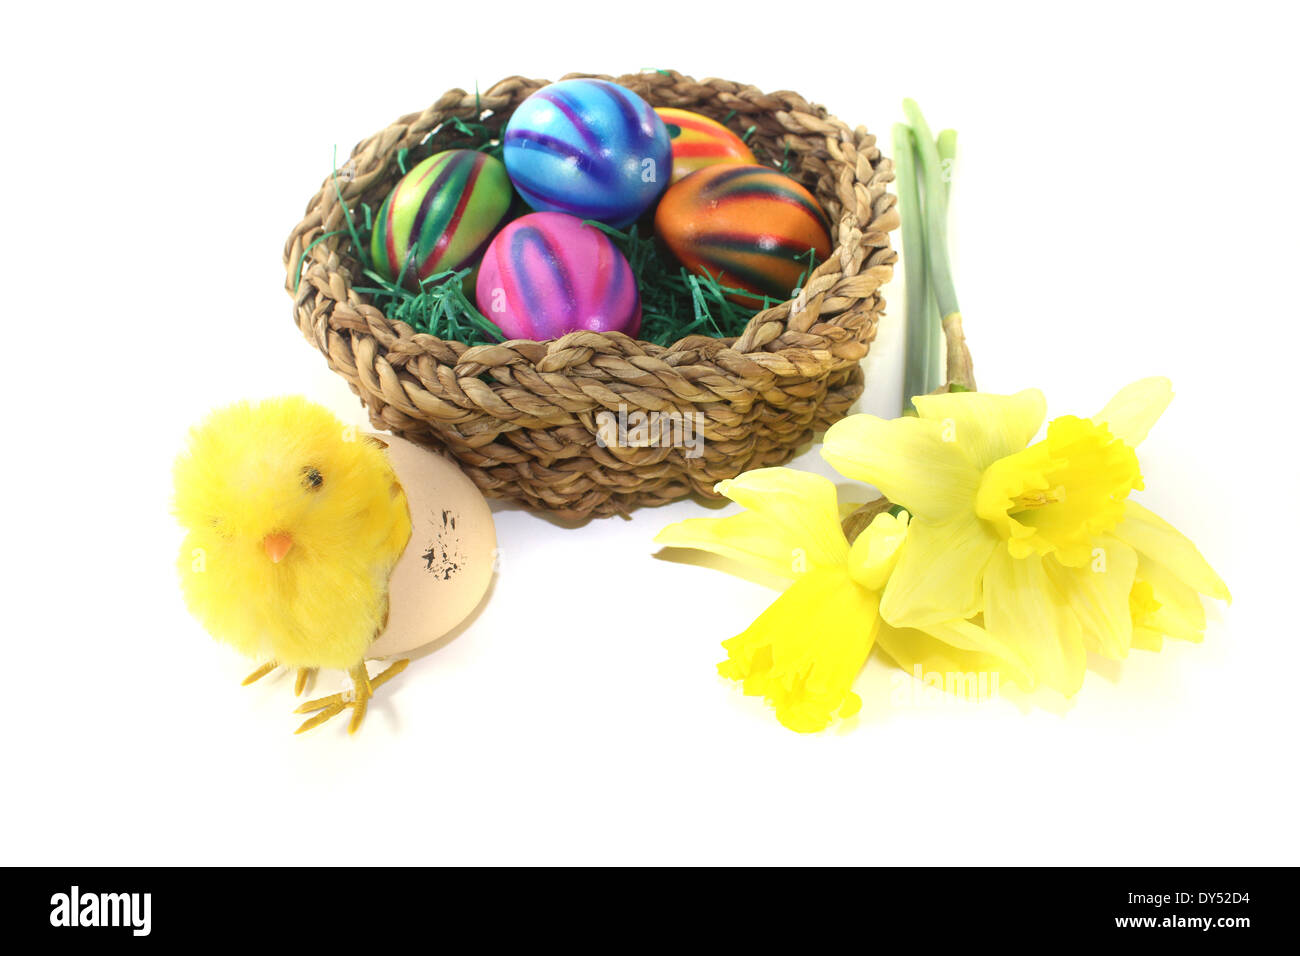 Easter Basket with chick and eggs on a light background - Stock Image